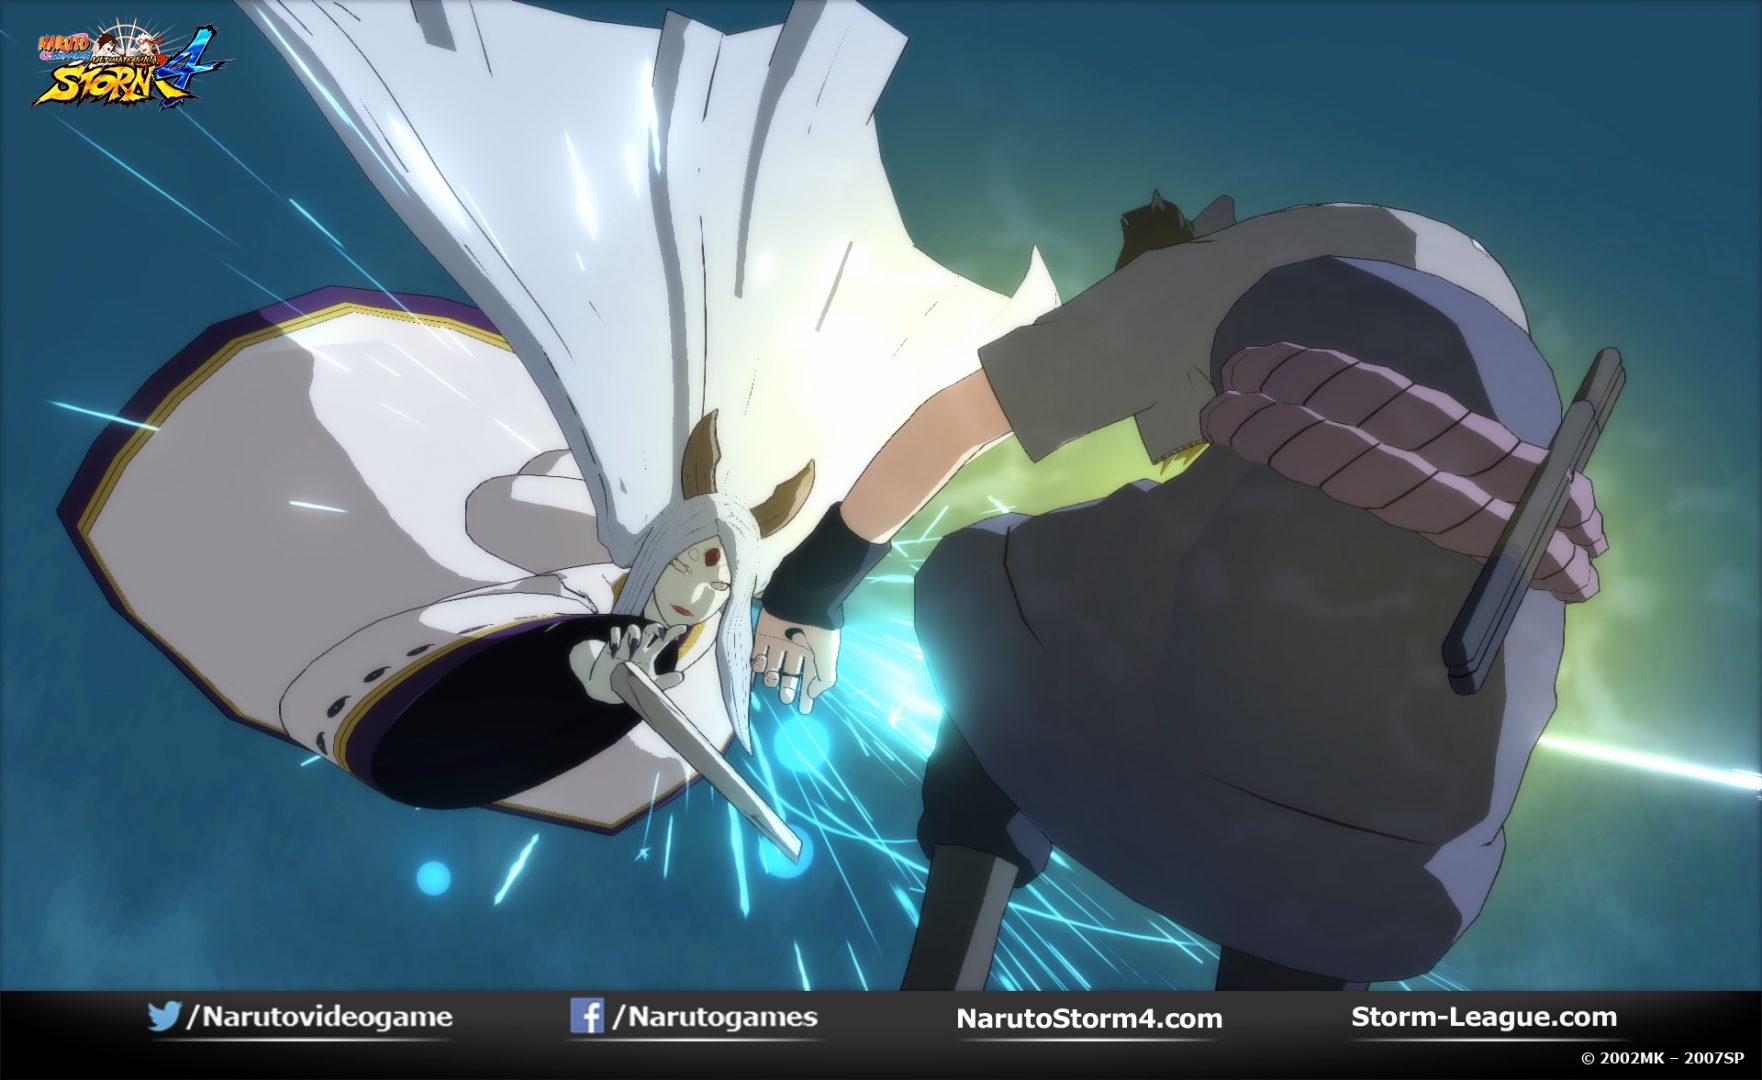 Naruto Shippuden: Ultimate Ninja Storm 4's Kaguya Detailed